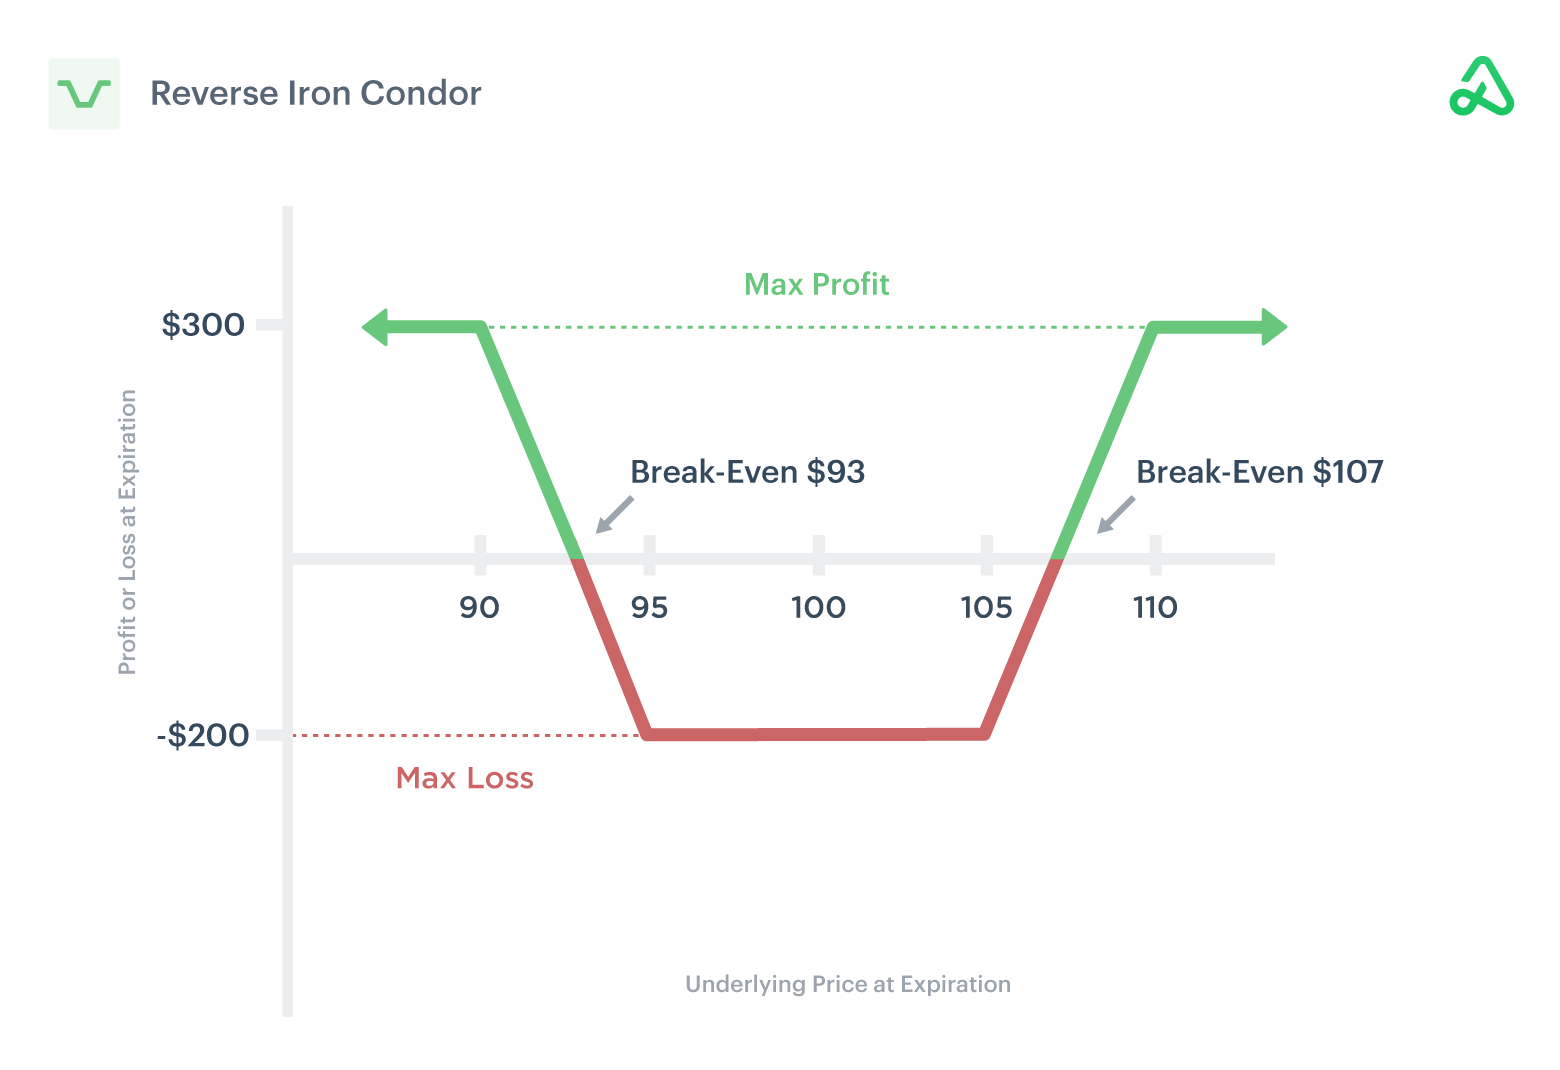 Image of reverse iron condor payoff diagram showing max profit, max loss, and break-even points